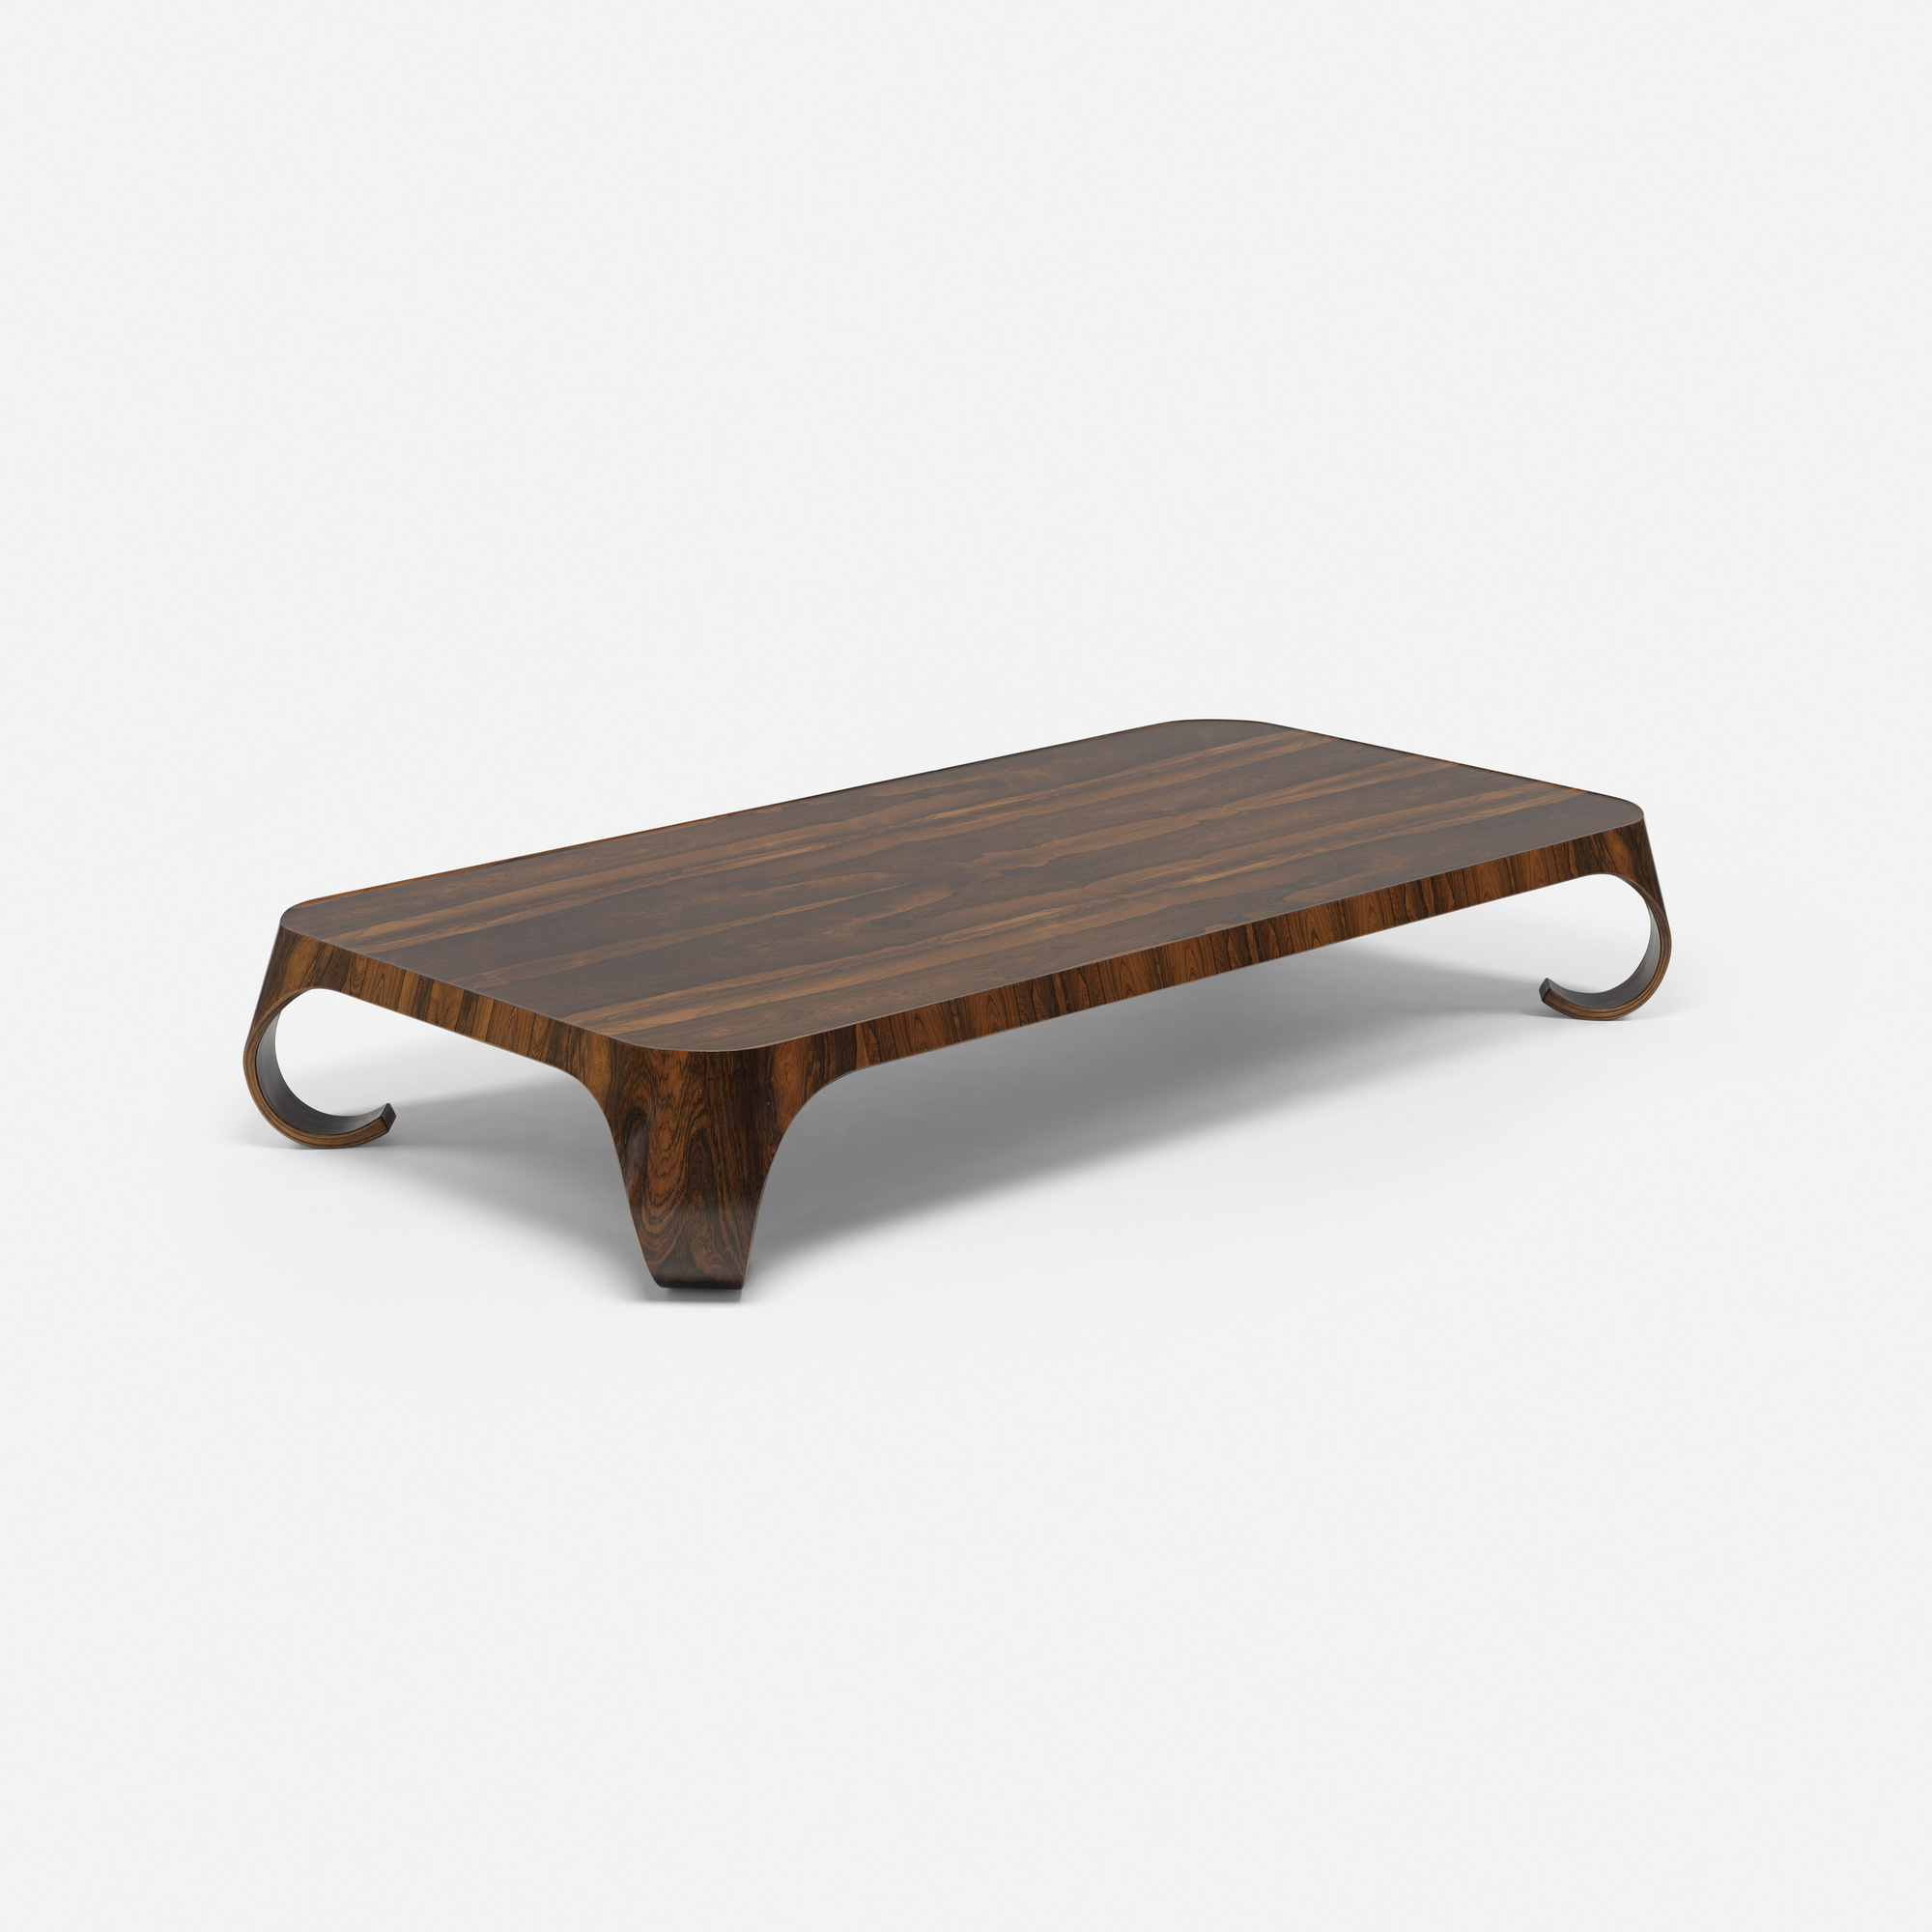 360: Isamu Kenmochi / custom coffee table (1 of 3)